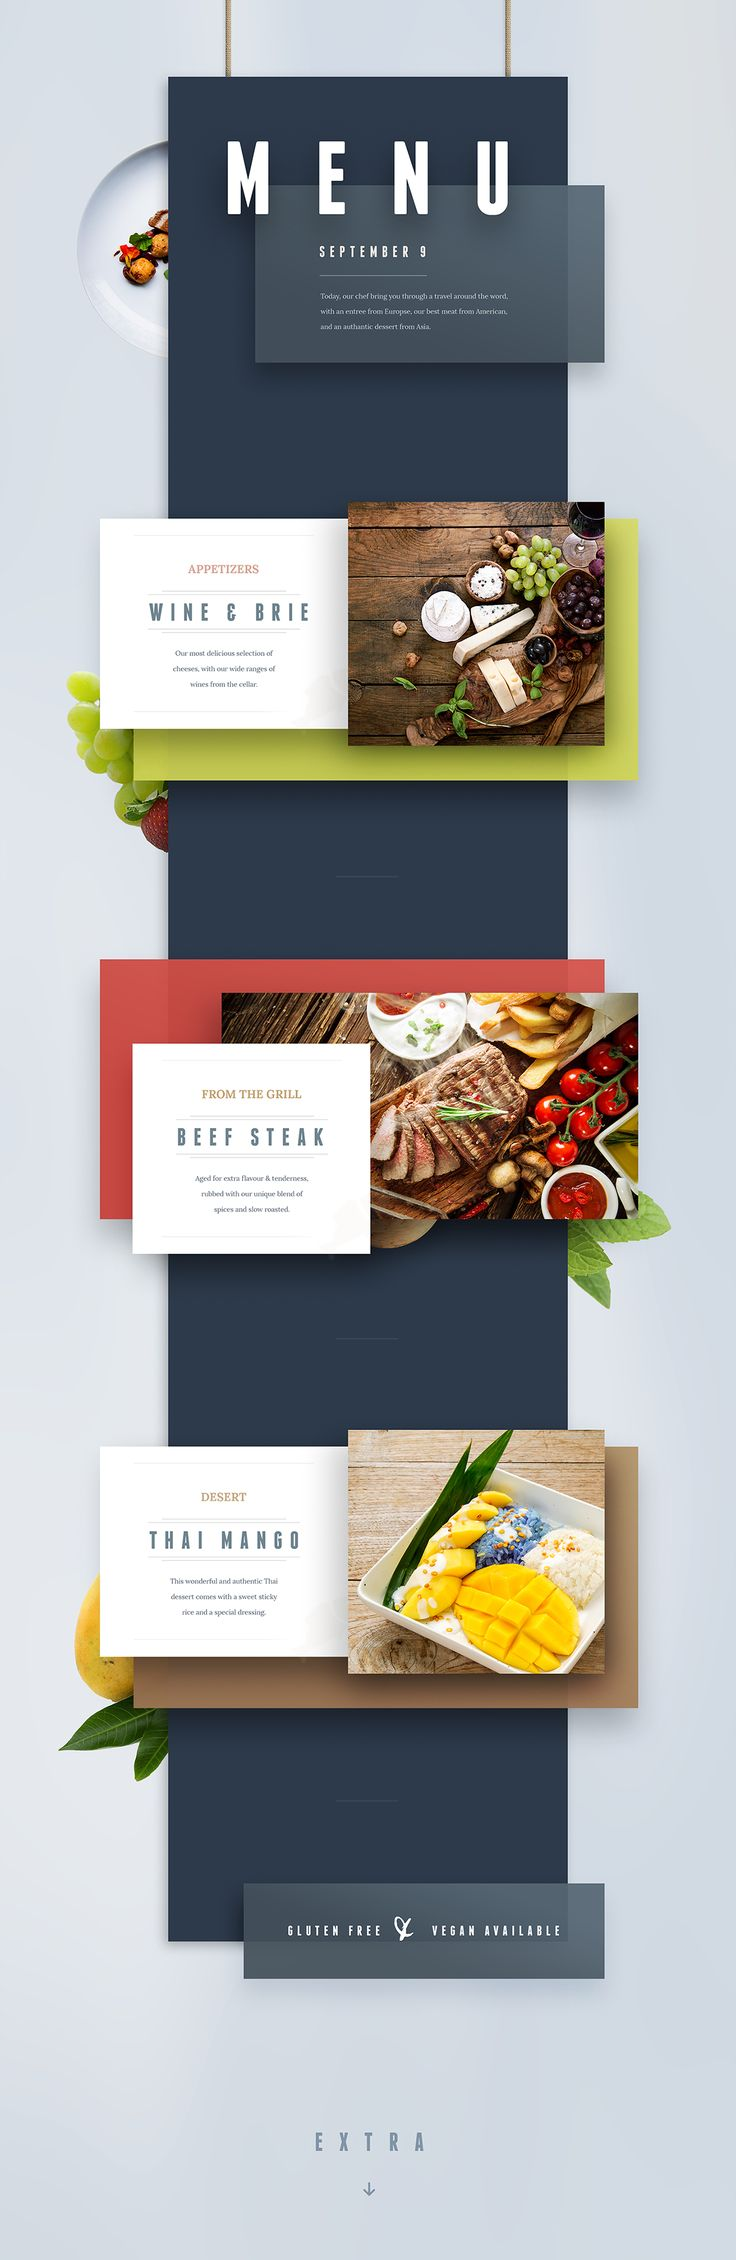 9 best Web design by Niko Dola images on Pinterest | Design ...